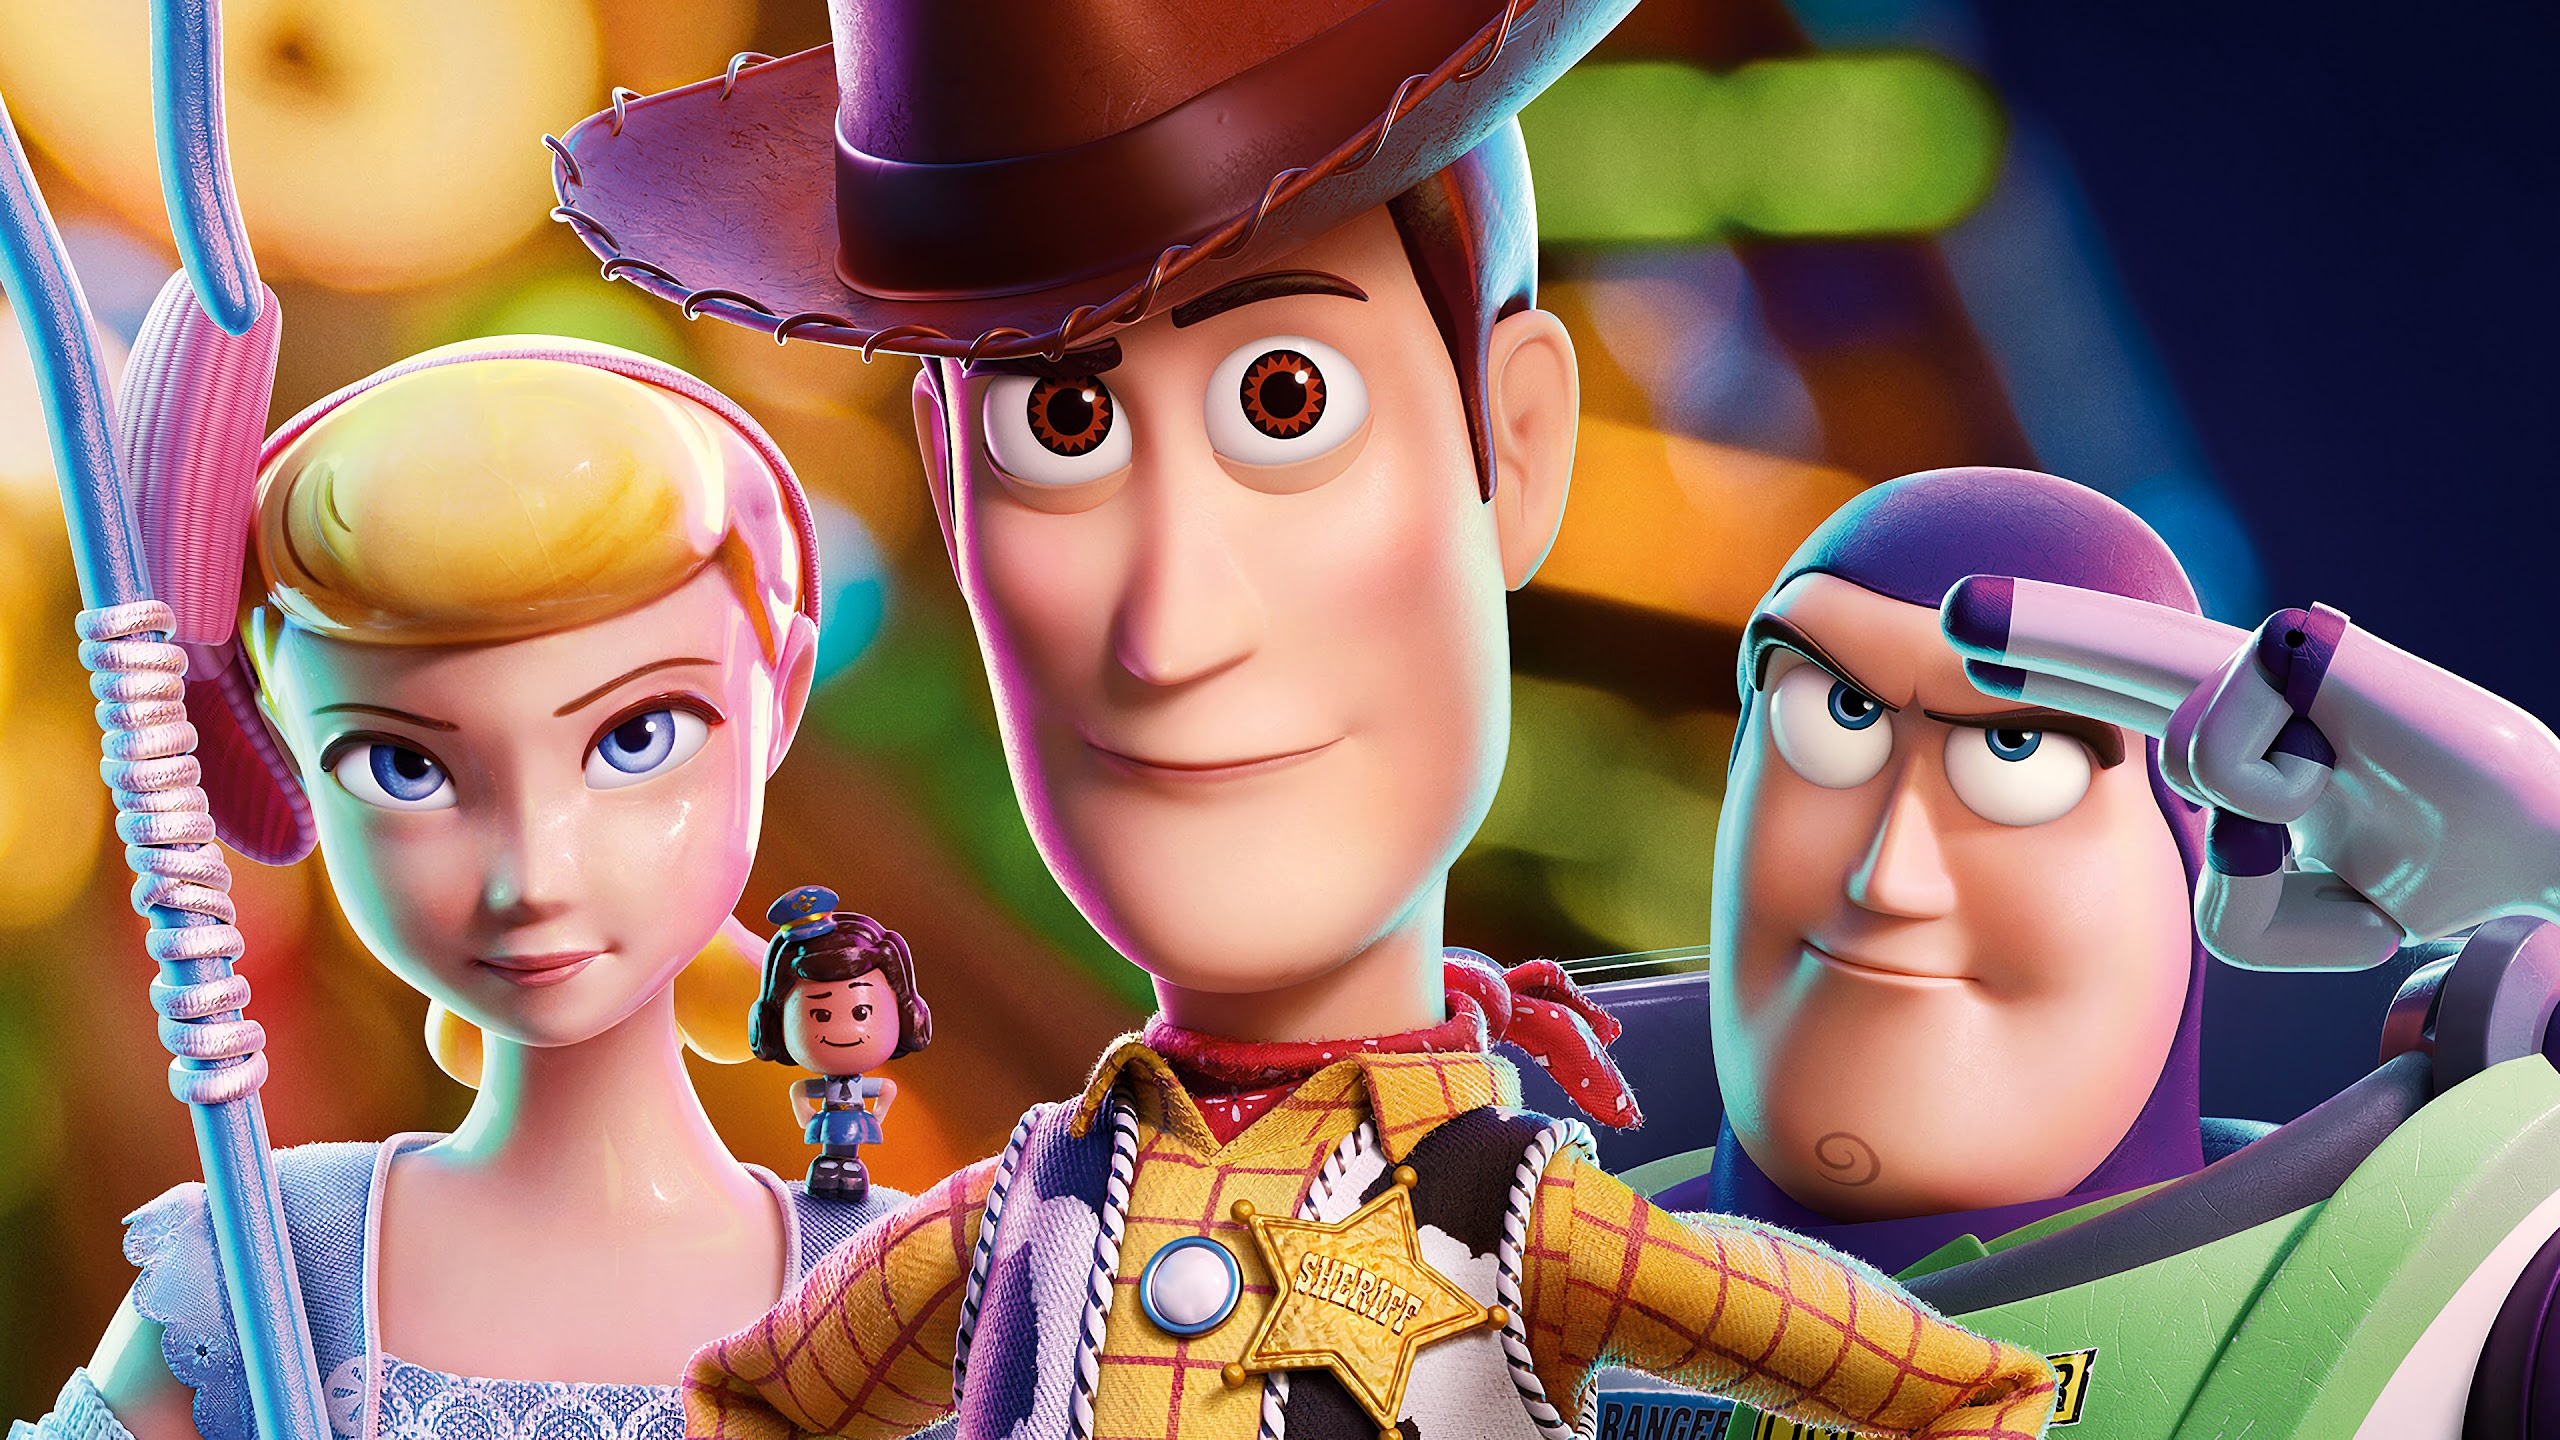 Toy Story 4 Woody Buzz Lightyear Bo Peep 4k Wallpaper 20